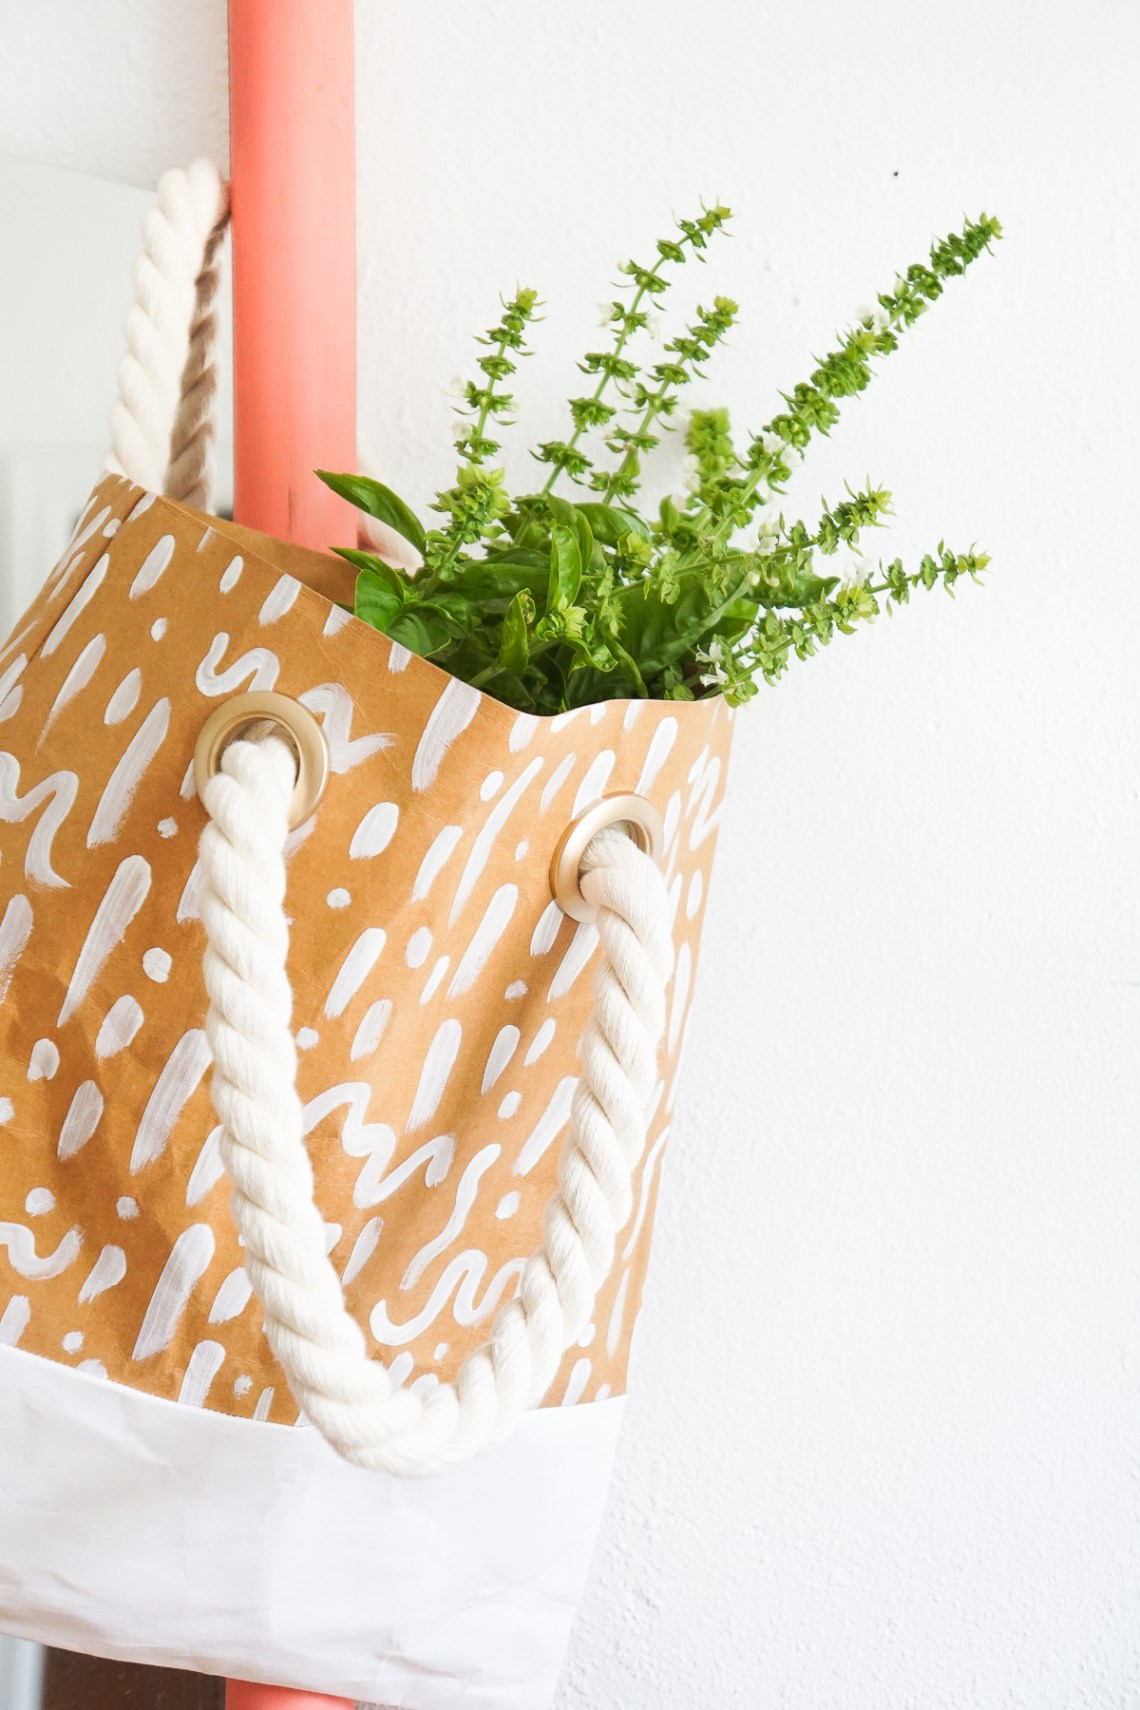 Ever heard of machine washable paper? Hop over to see what it's all about + a paper leather tote project to try! Click through...